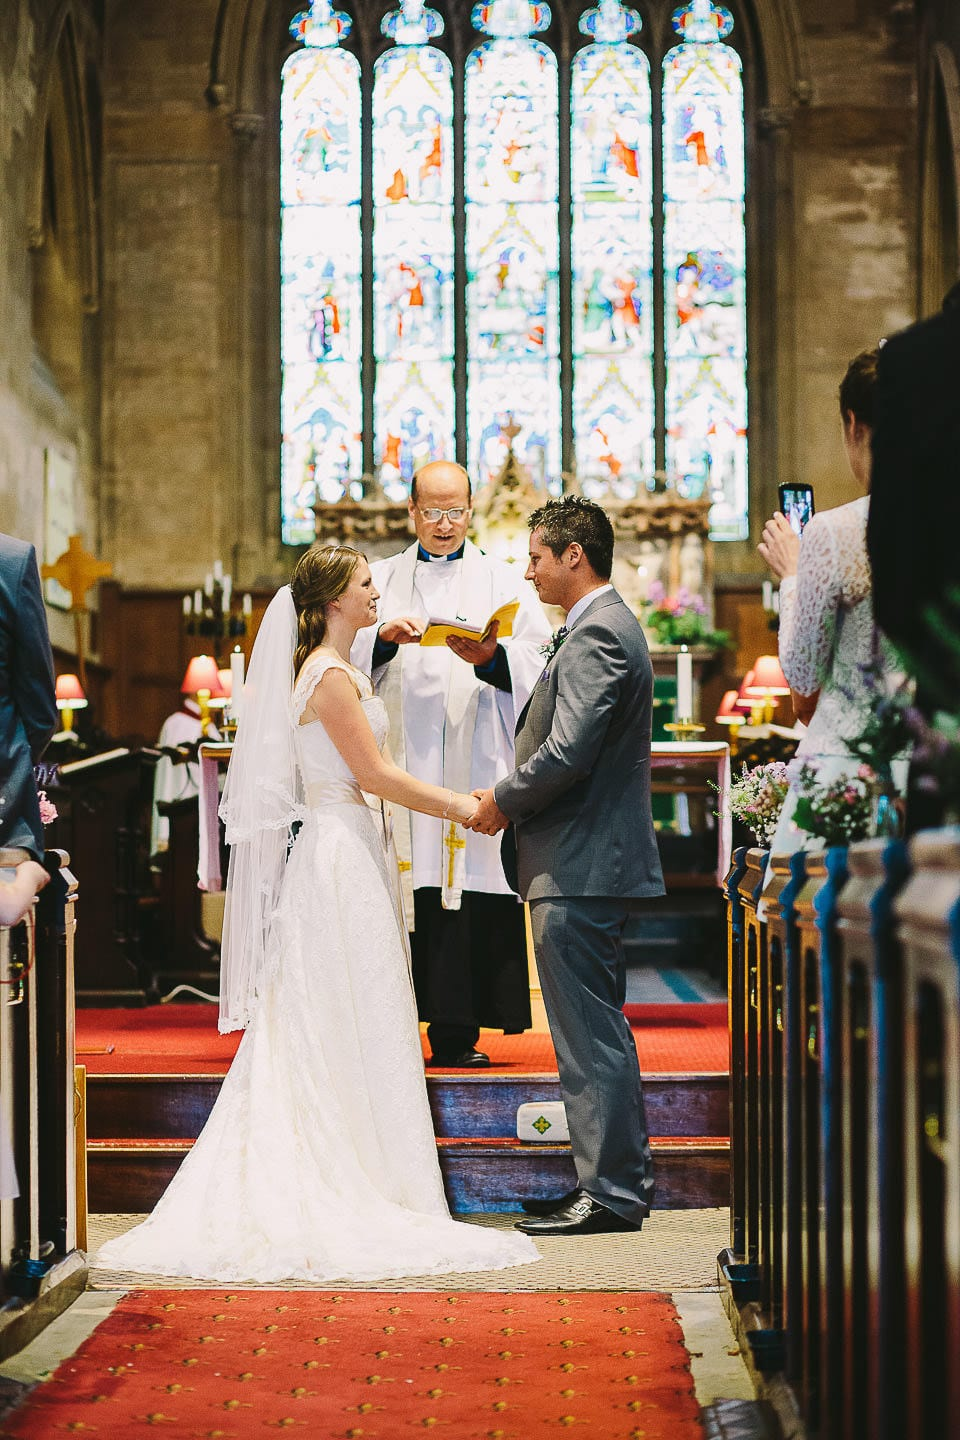 Bride and groom holding hands in church